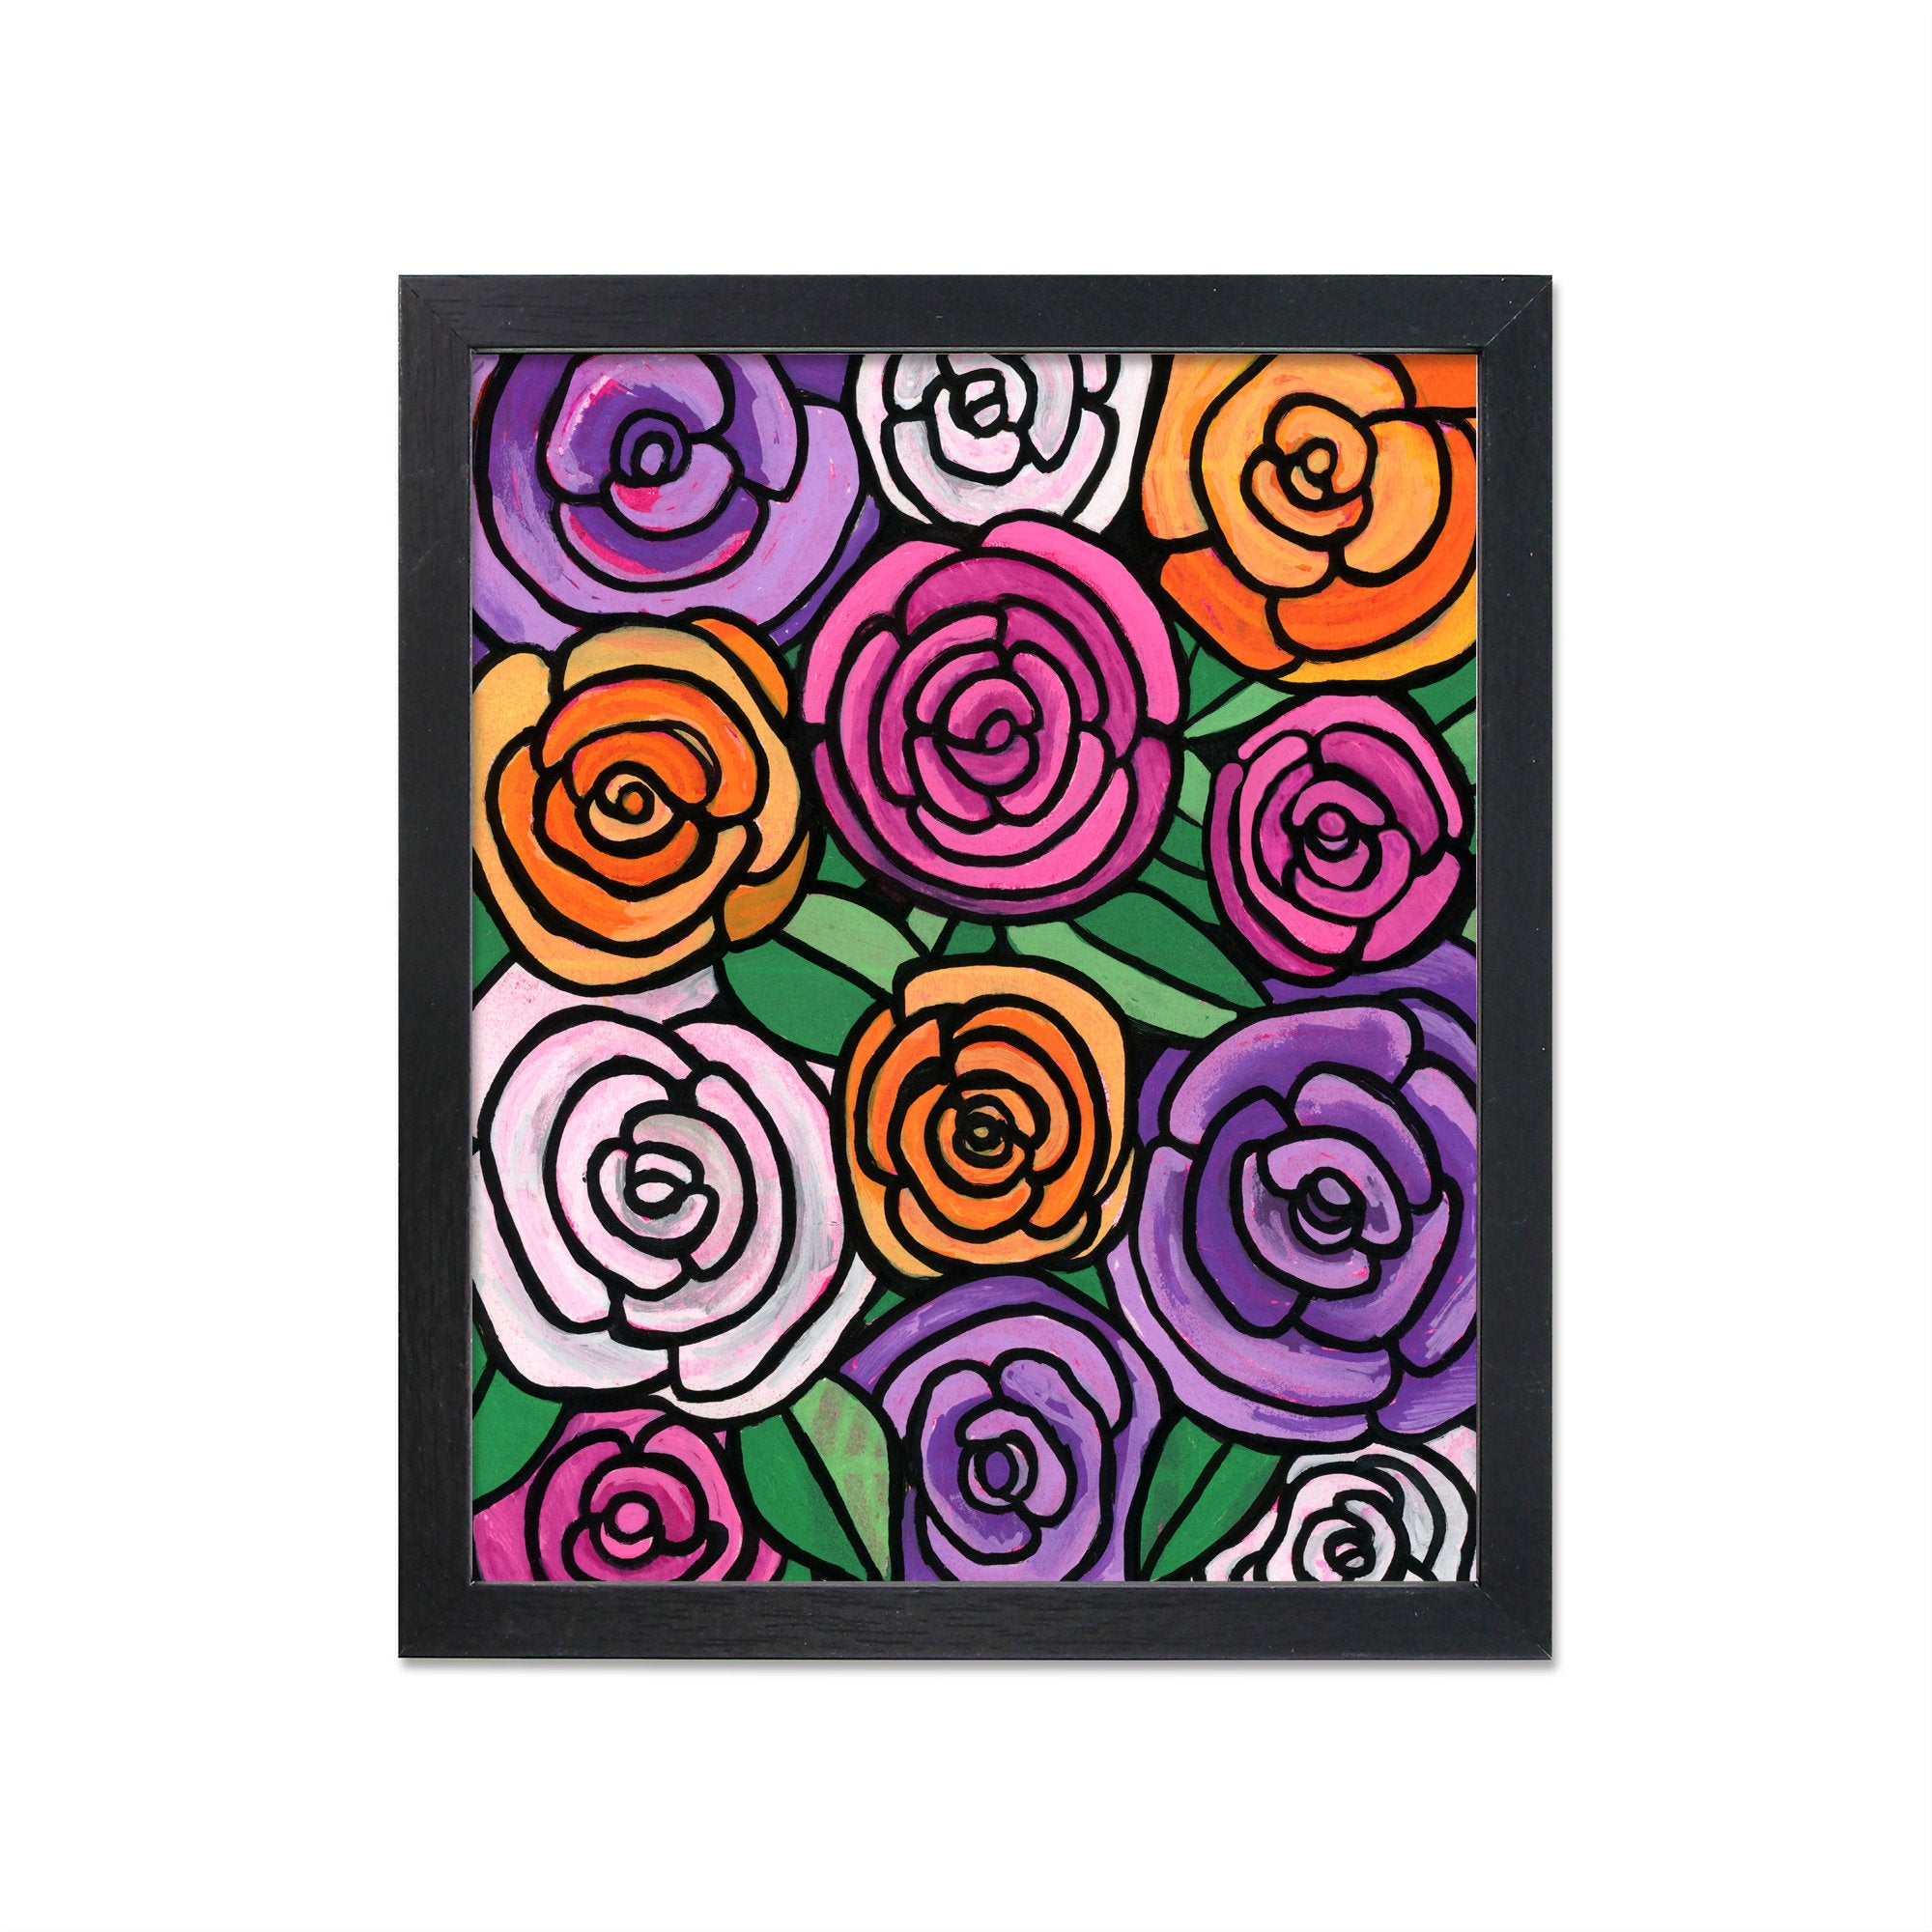 Whimsical Spring Rose Art Print - Purple, Pink, Orange Roses